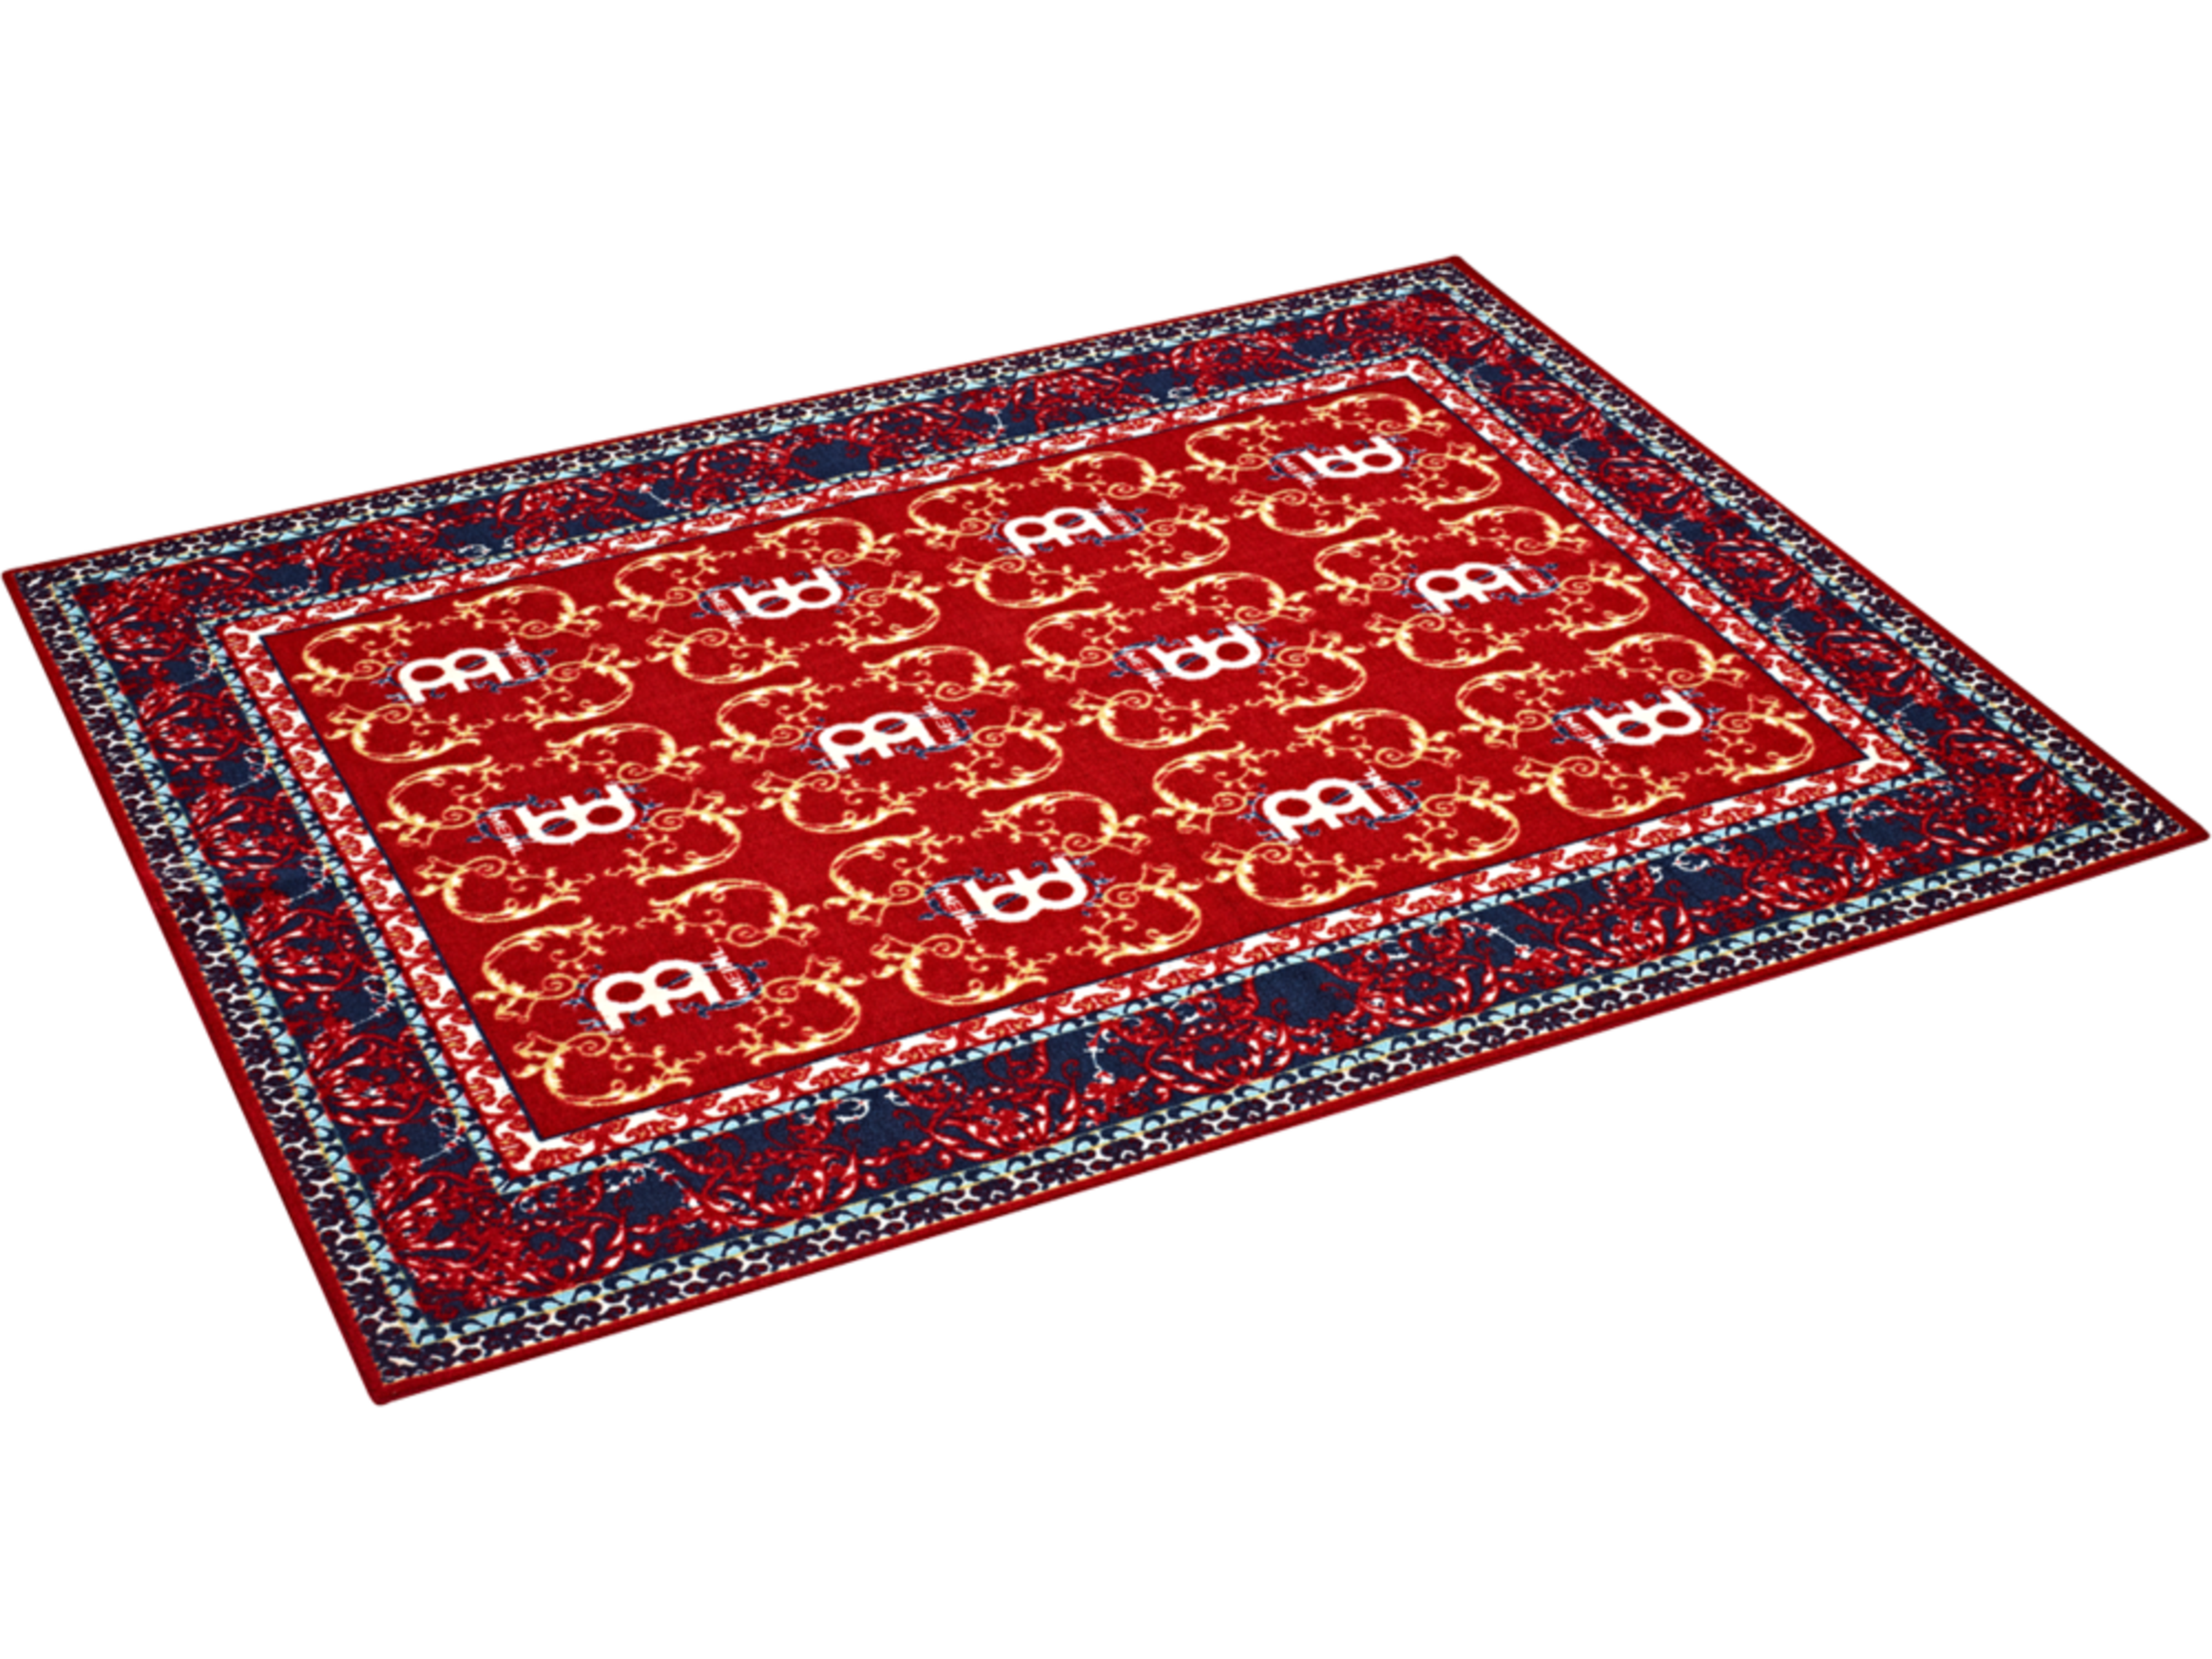 Free download of Carpet Icon